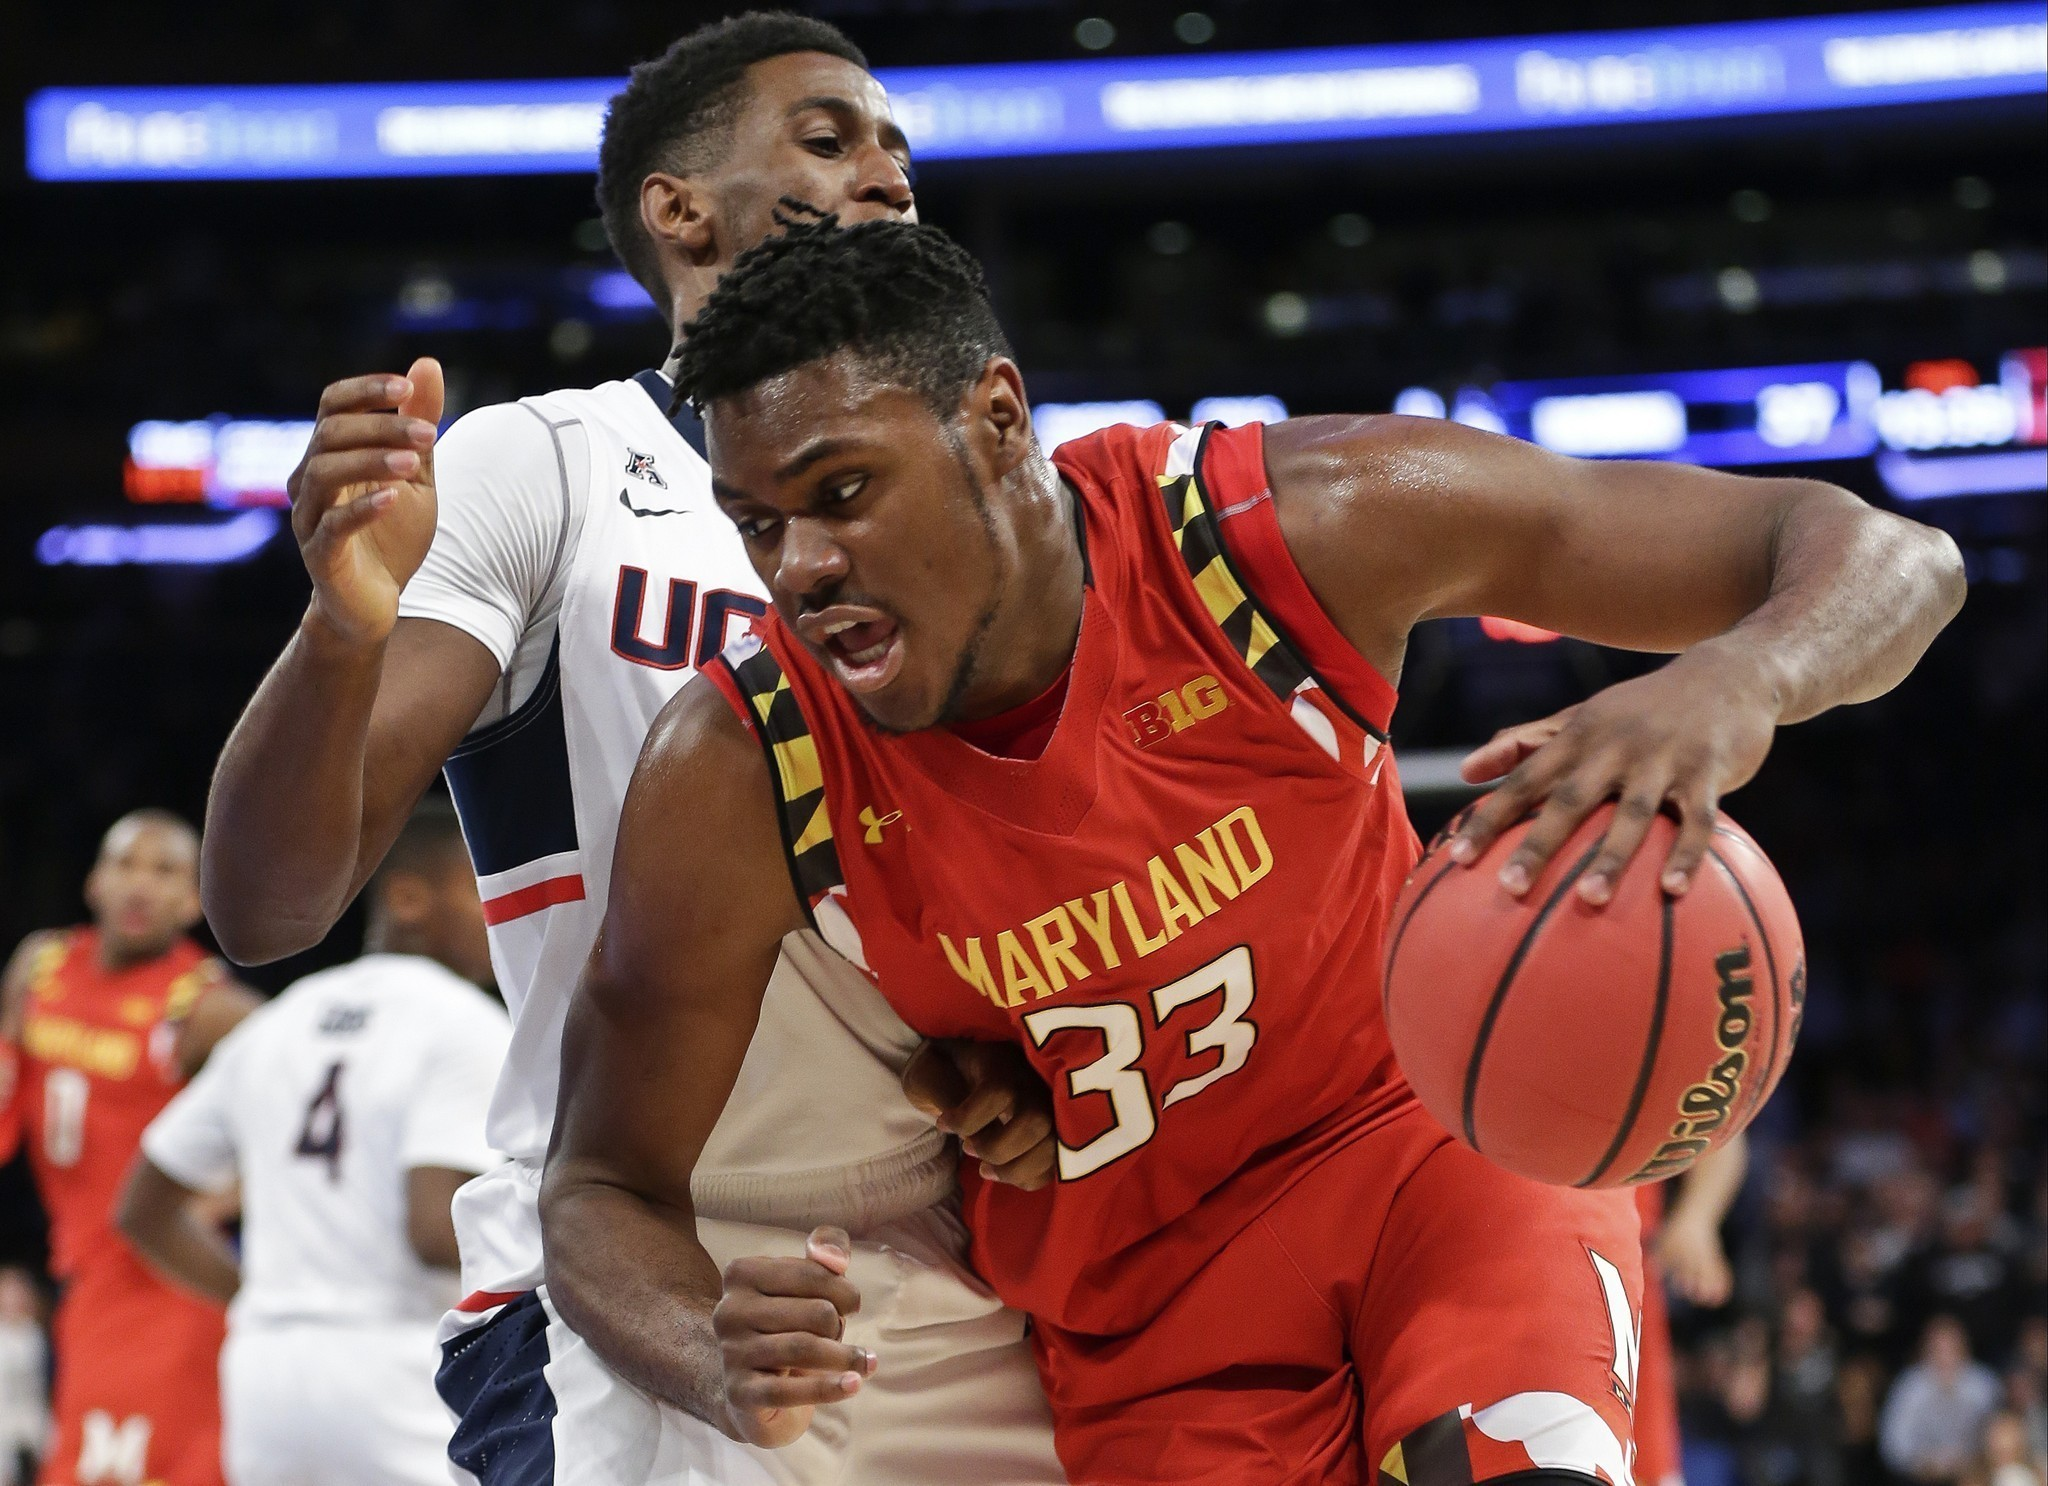 Report says Diamond Stone will declare for the NBA draft ...